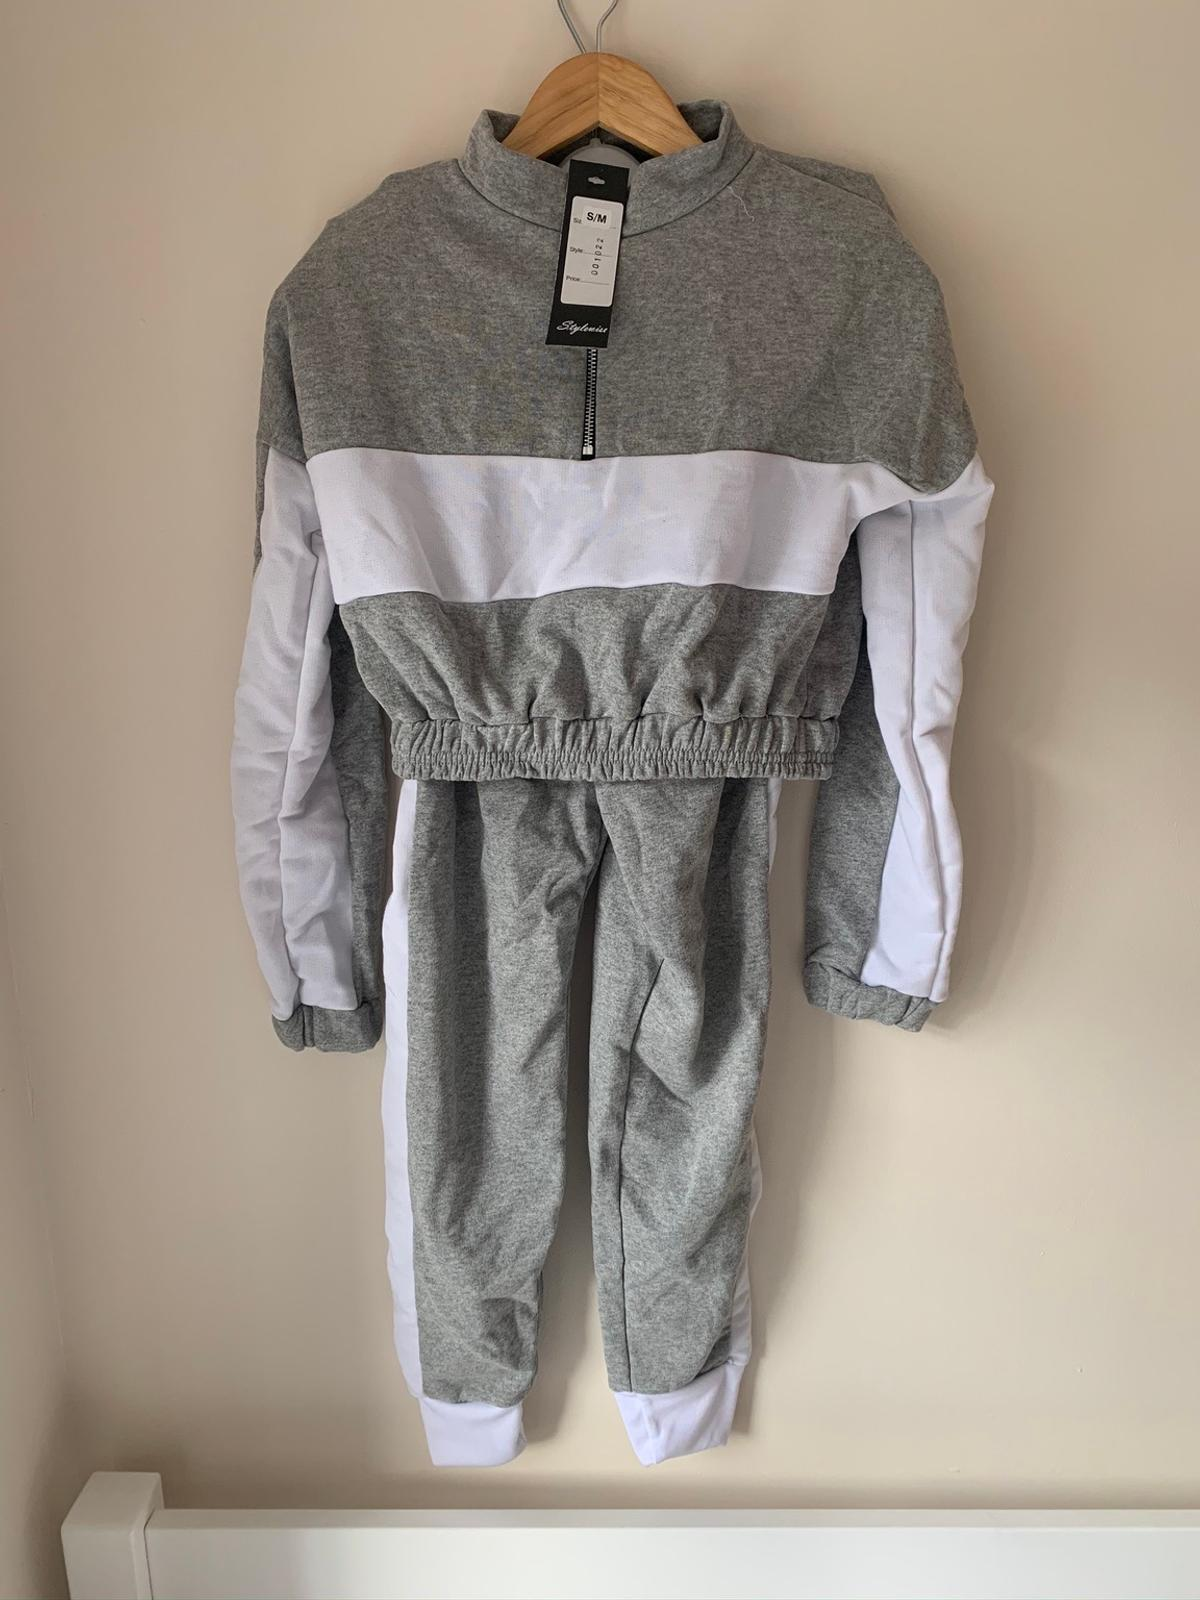 Loungewear set In the Style Never worn, label still on, in good condition!